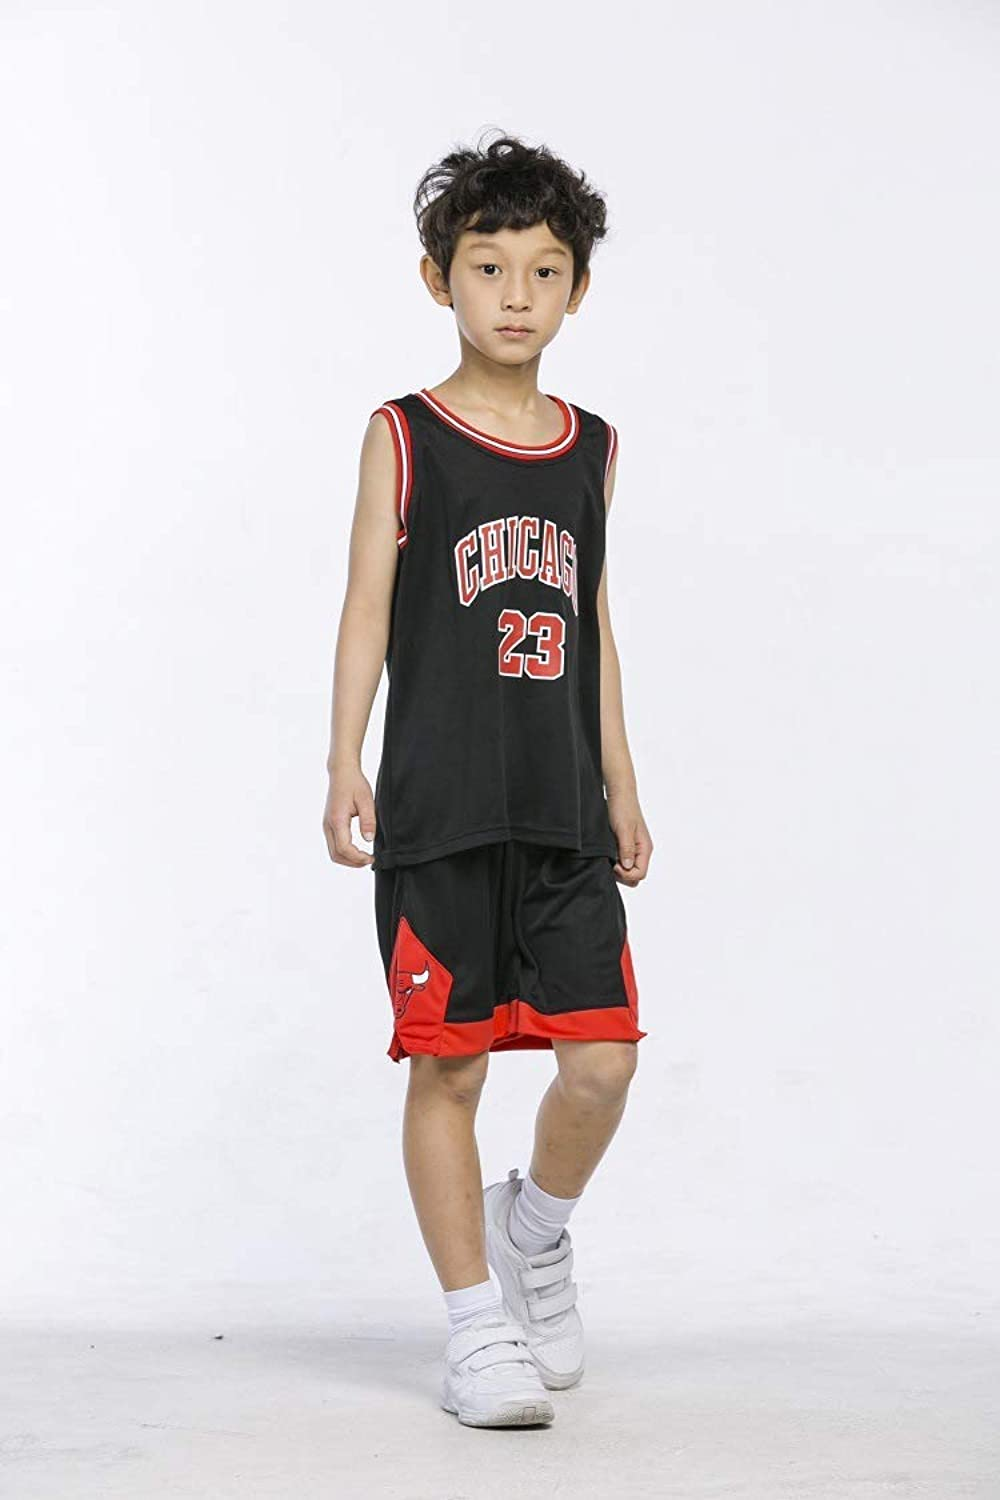 CCL NBA Kid Jersey Set, 23 Bulls Jordan Basketball Stickerei Shirt Training Tragen Für Jungen & Mdchen